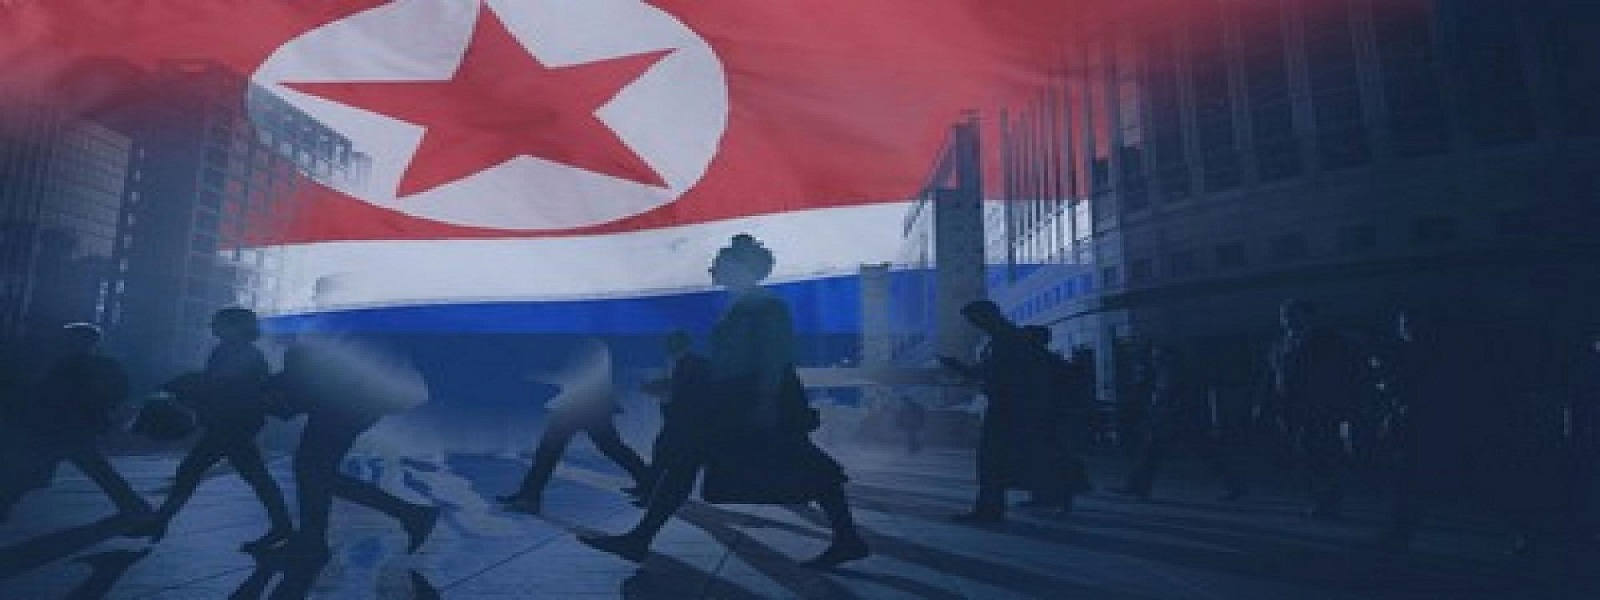 UN report claims Singapore firms illegally sent luxury goods to North Korea